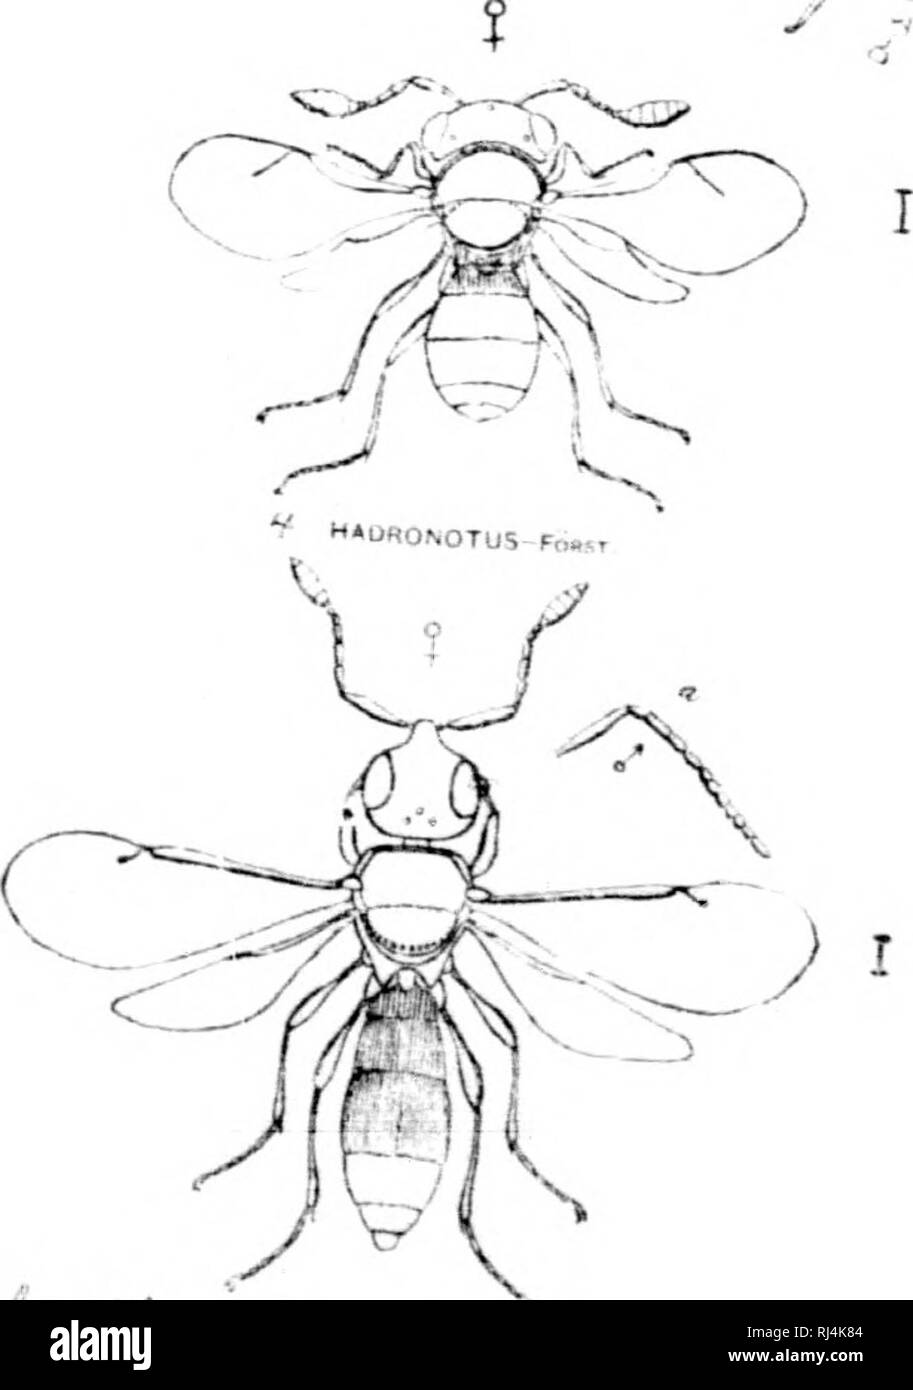 """. A monograph of the North American Proctotrypidae [microform]. Hymenoptera; Hyménoptères. k i^^ MB^ ^^-^ /^ SPAftASiOr^-ji, 'zaxN Toa-€U3 Af-^t. /'^""""^'a^--.-. Please note that these images are extracted from scanned page images that may have been digitally enhanced for readability - coloration and appearance of these illustrations may not perfectly resemble the original work.. Ashmead, William H. (William Harris), 1855-1908. Washington : G. P. O. - Stock Image"""